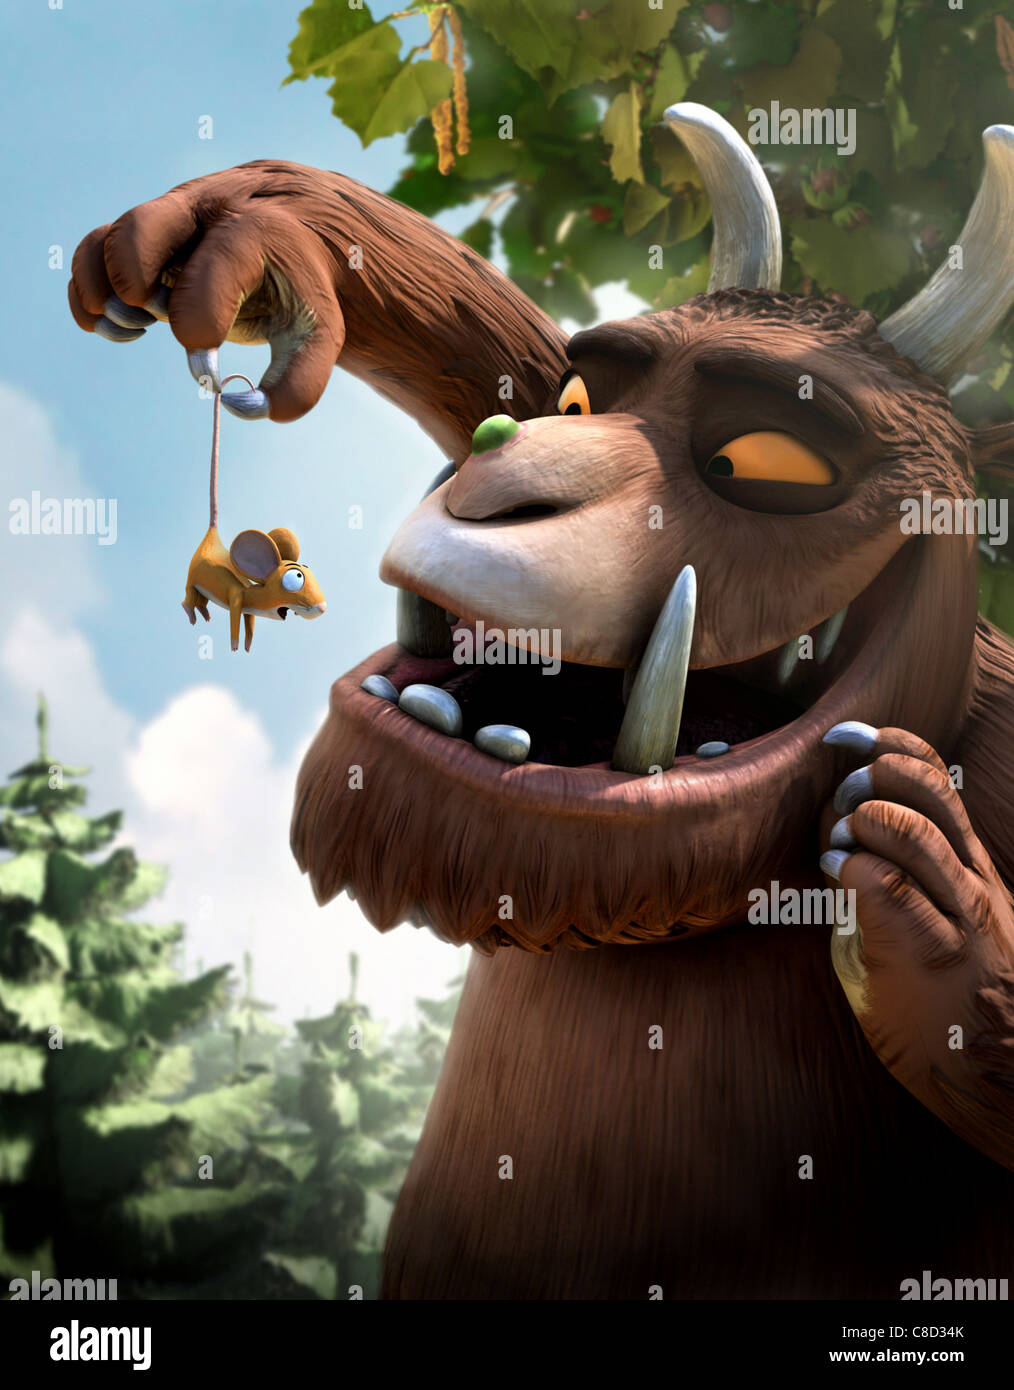 MOUSE & GRUFFALO THE GRUFFALO (2009)Stock Photo